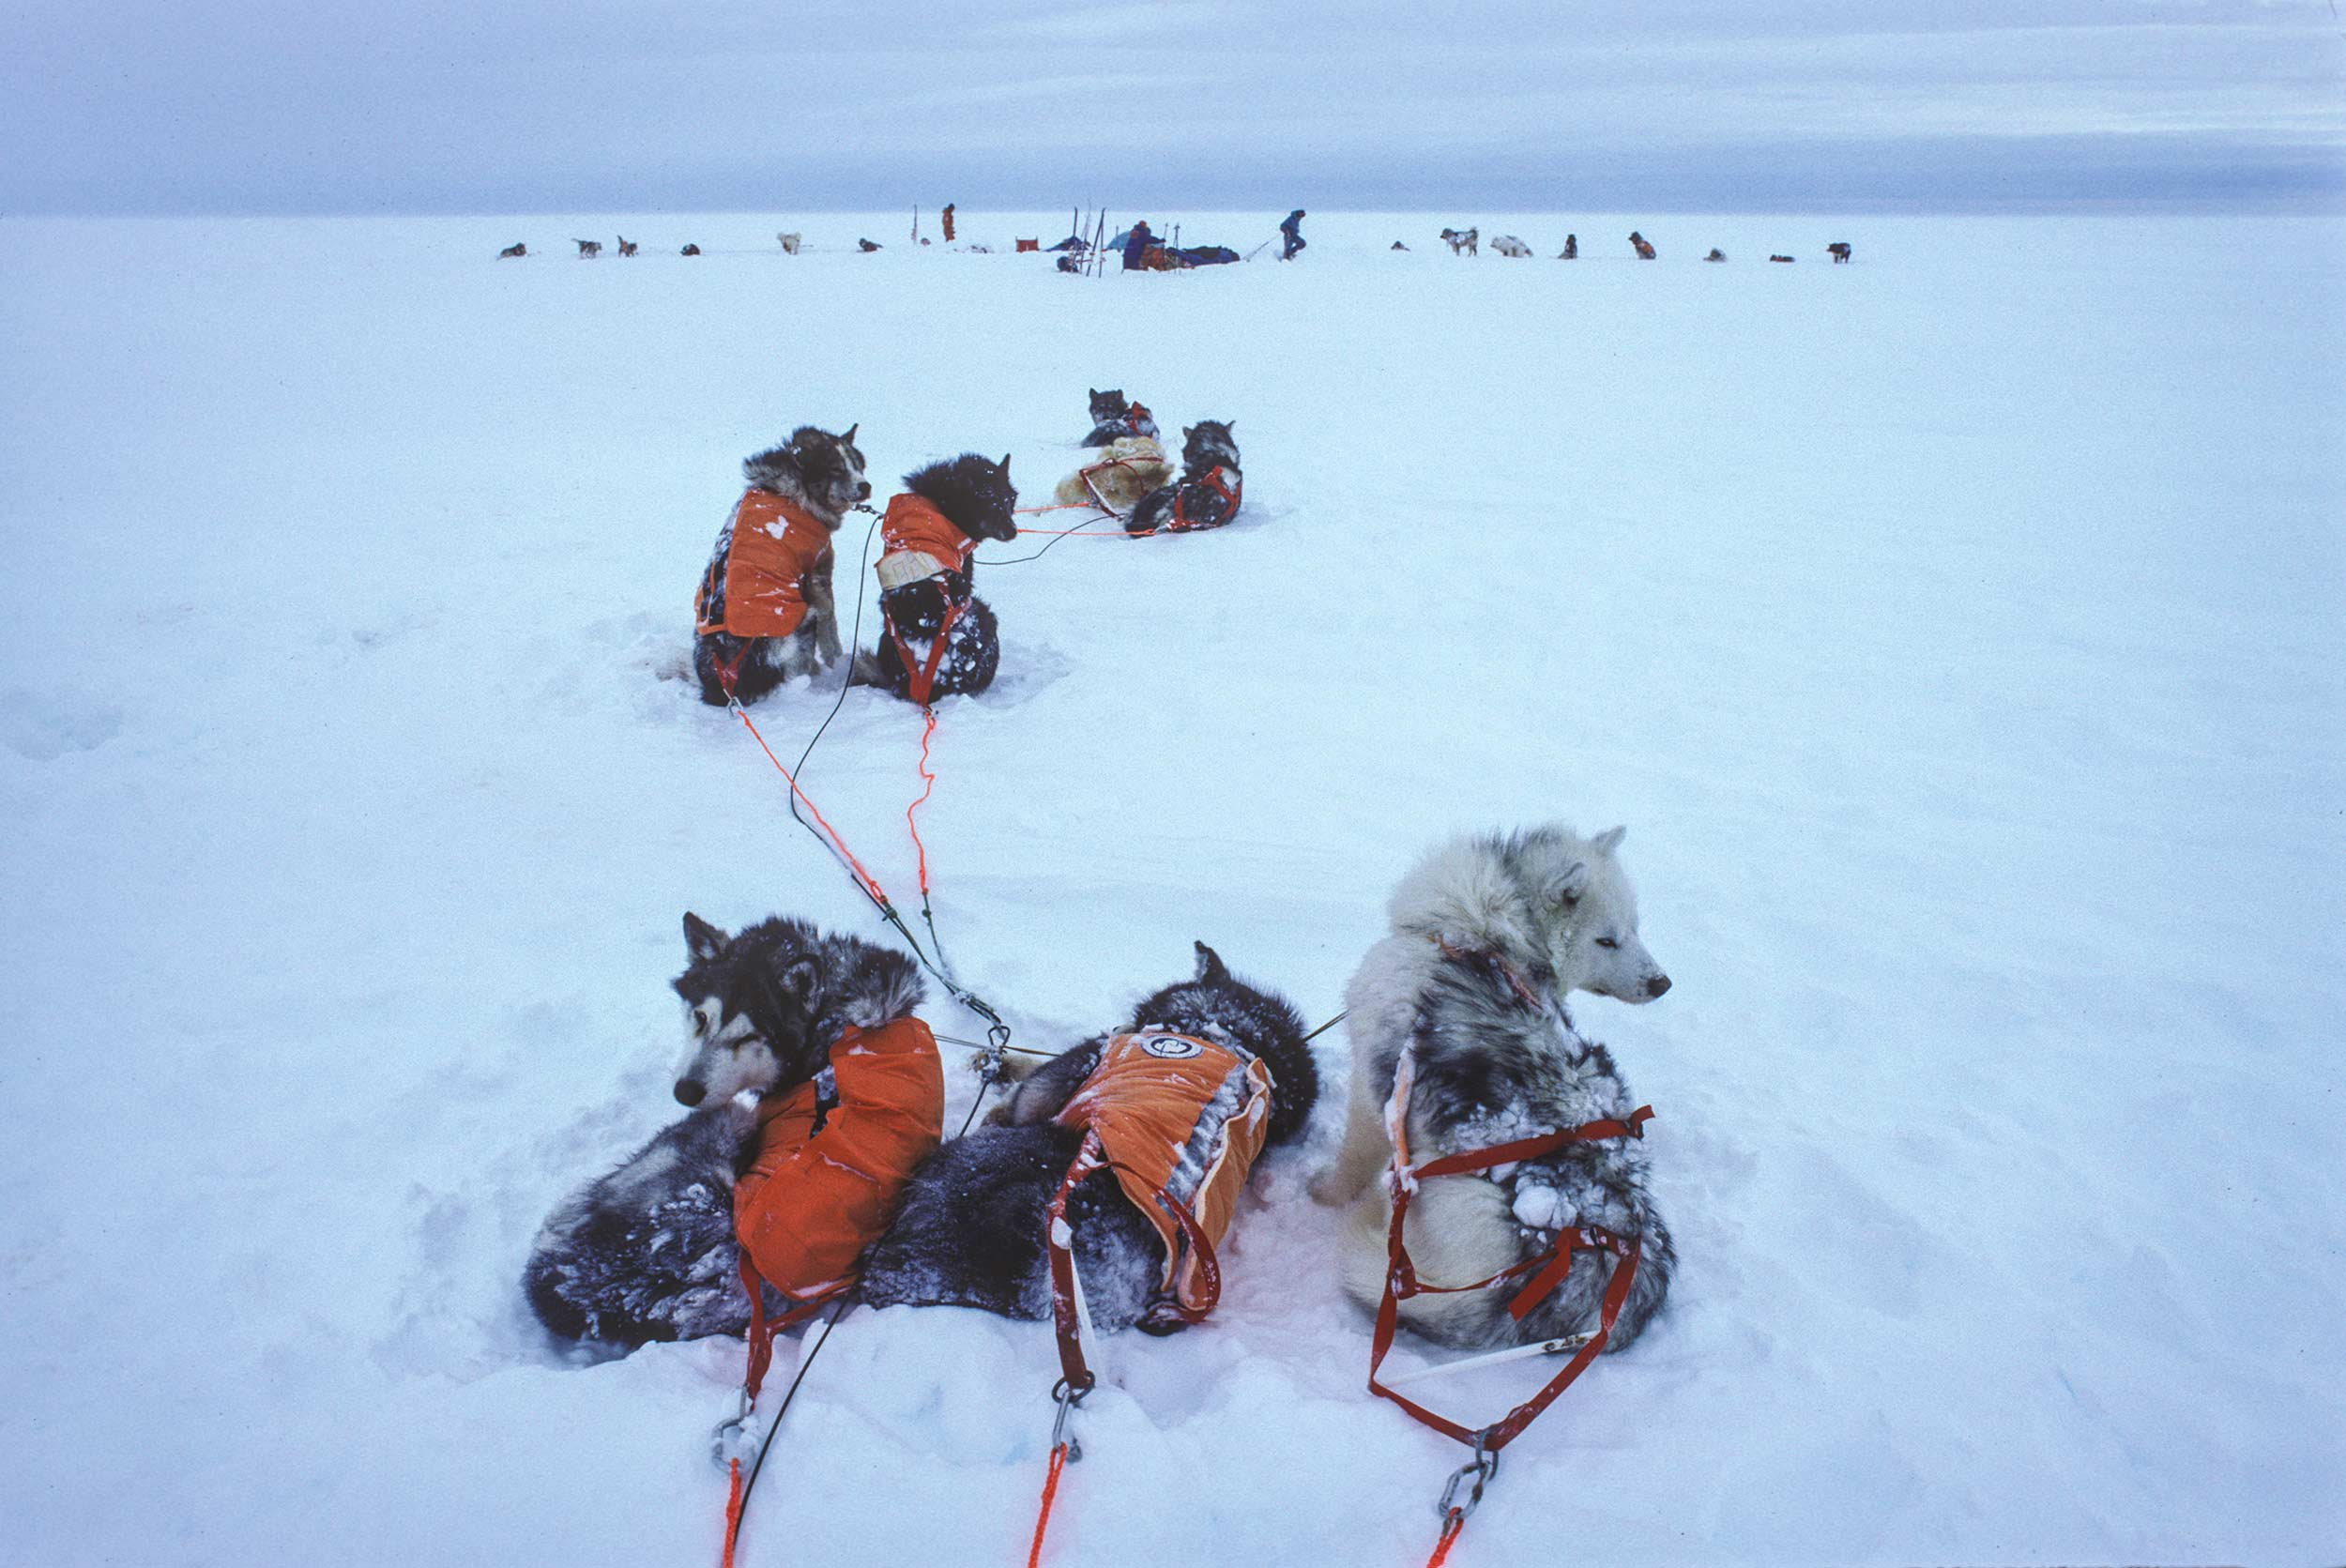 Trans-Antarctica-Expedition--sled-dogs-getting-ready-to-pull